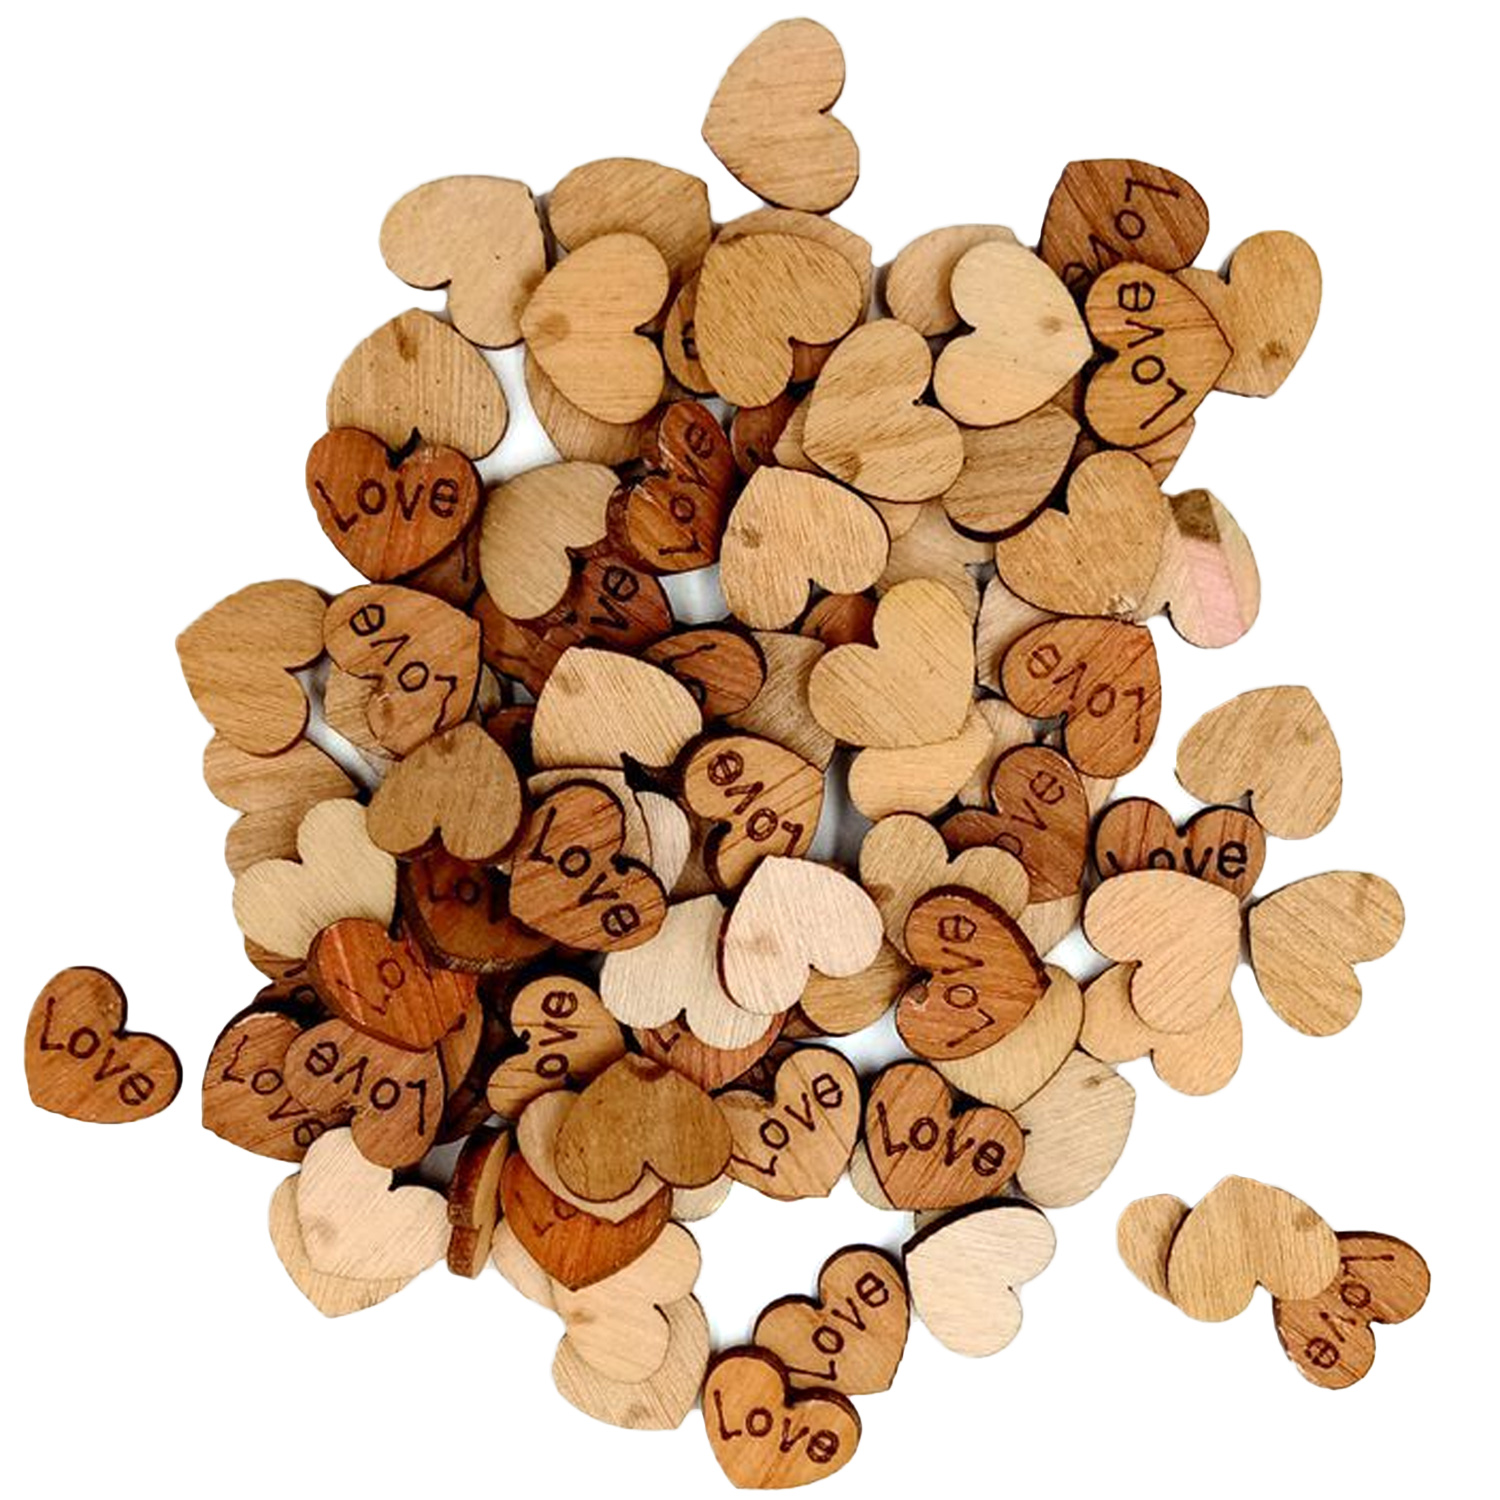 300pcs DIY Mini Rustic Wooden Love Hearts Shaped Wood Slices Confetti Button Handmade Craft Wedding Party Decoration Toy